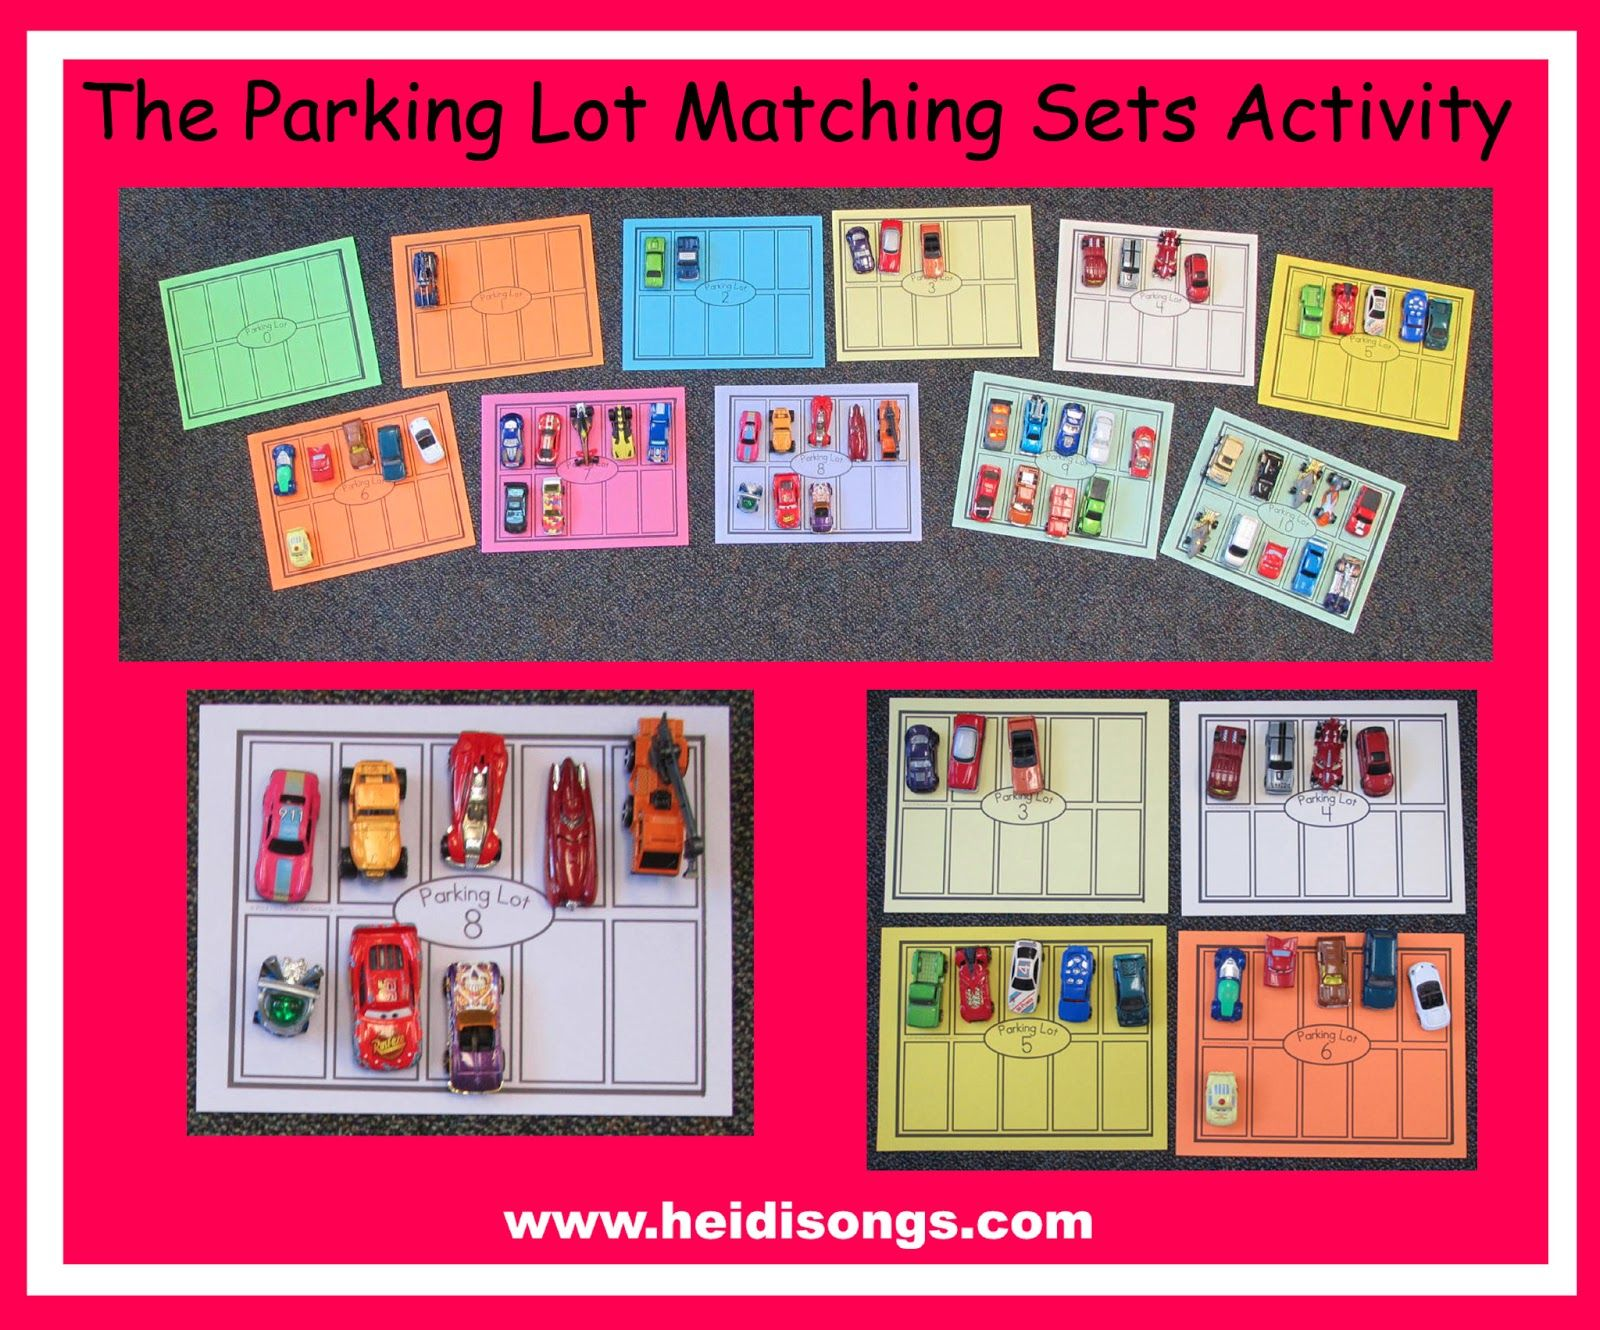 The Parking Lot Matching Sets Activity